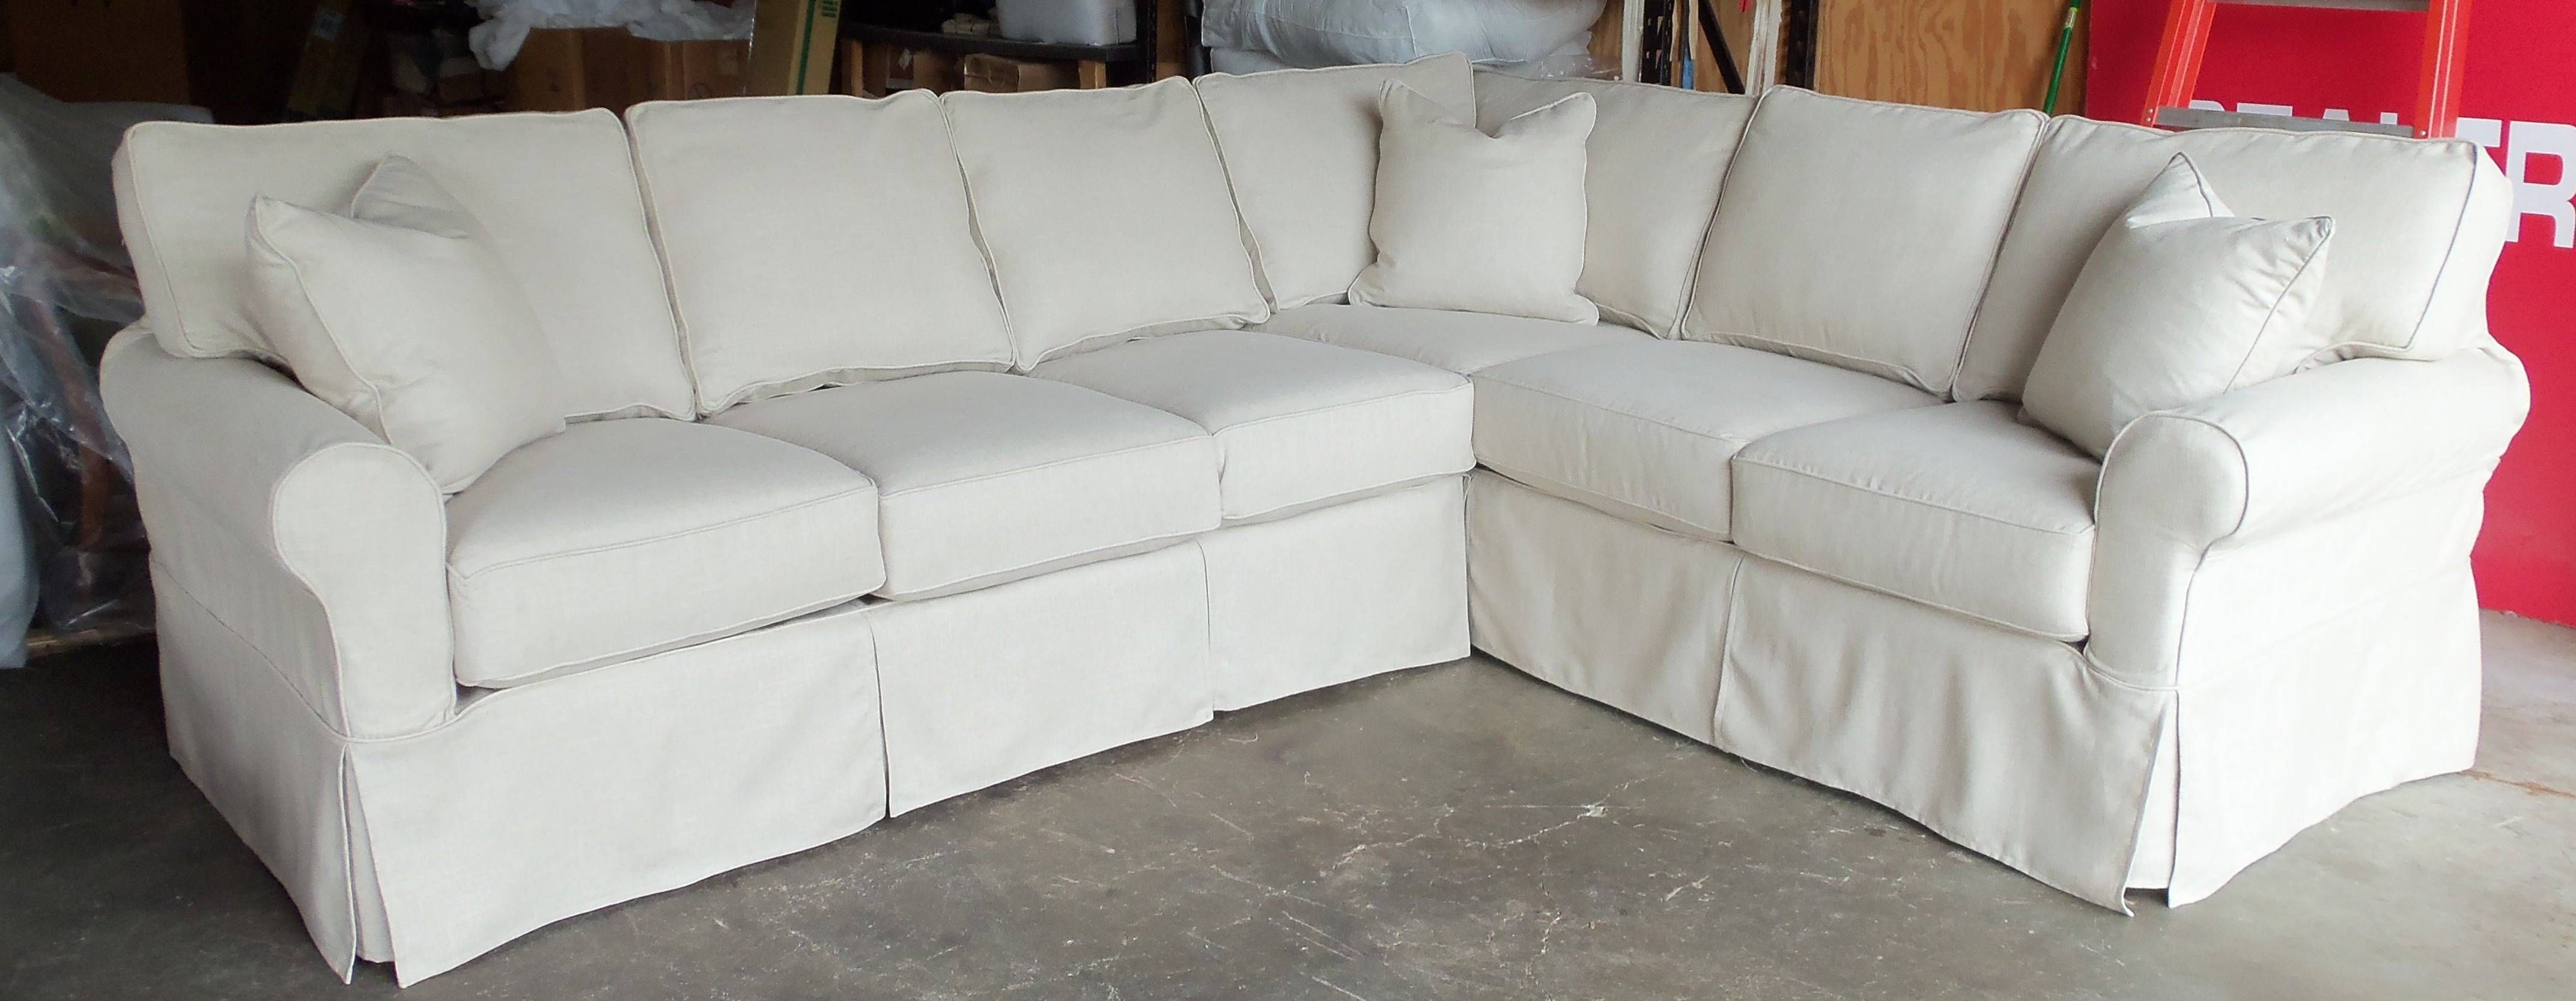 Inspirations: Interesting Furniture Sectional Sofa Slipcovers For Pertaining To Slipcovers Sofas (View 15 of 30)